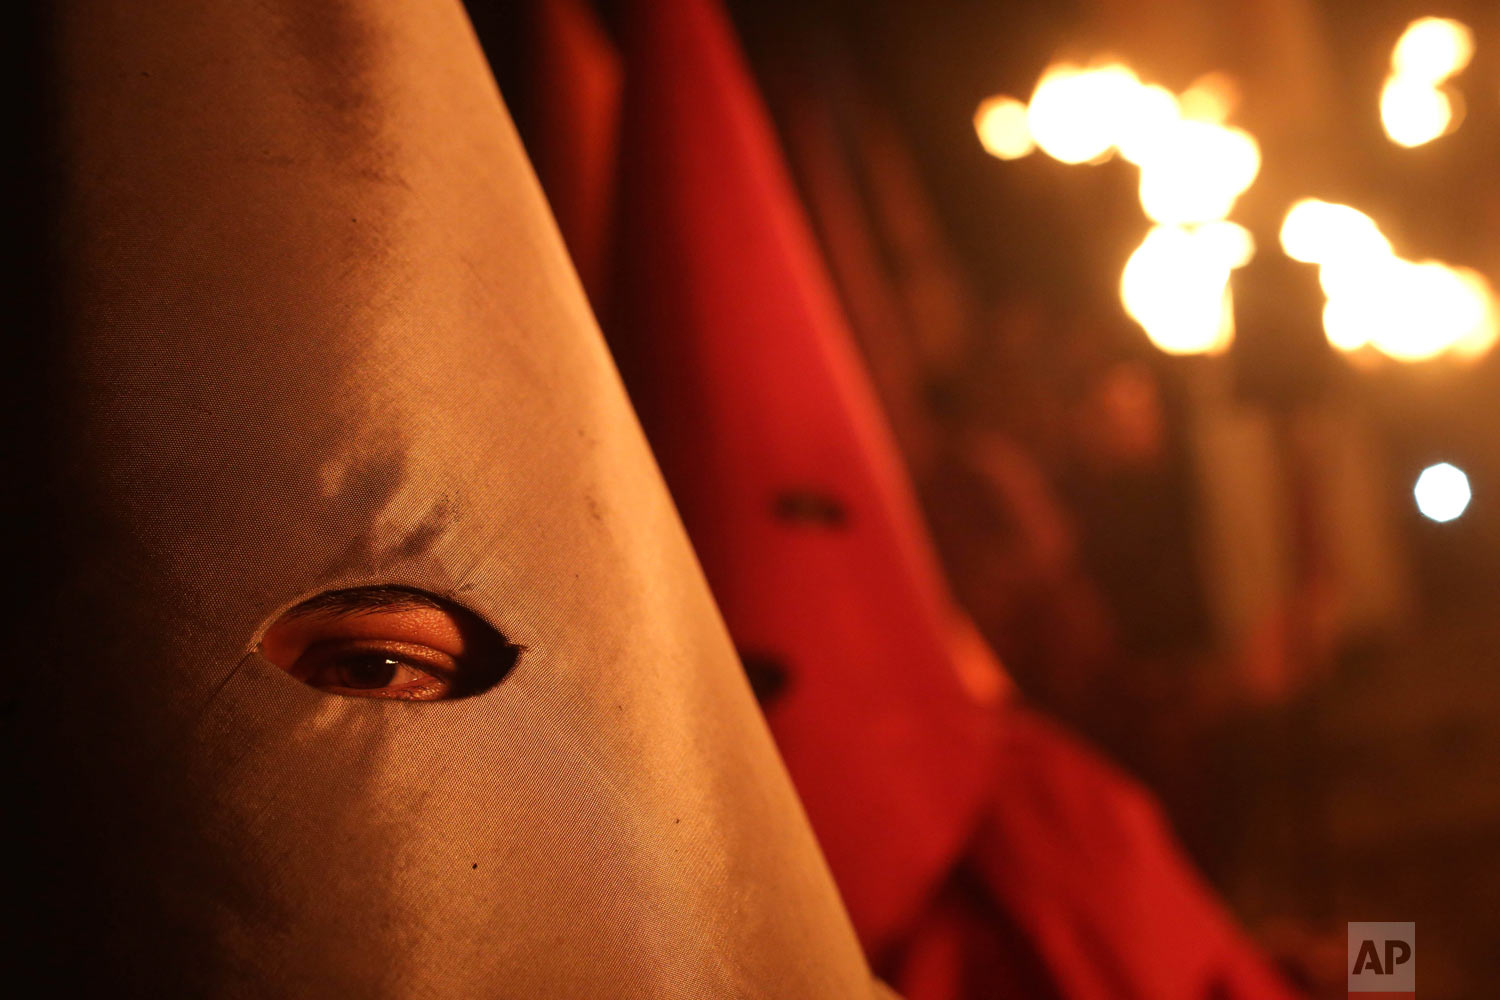 Hooded penitents walk during the Procession of Torches, a Holy Week procession in Goias, Brazil, earl, April 18, 2019. (AP Photo/Eraldo Peres)